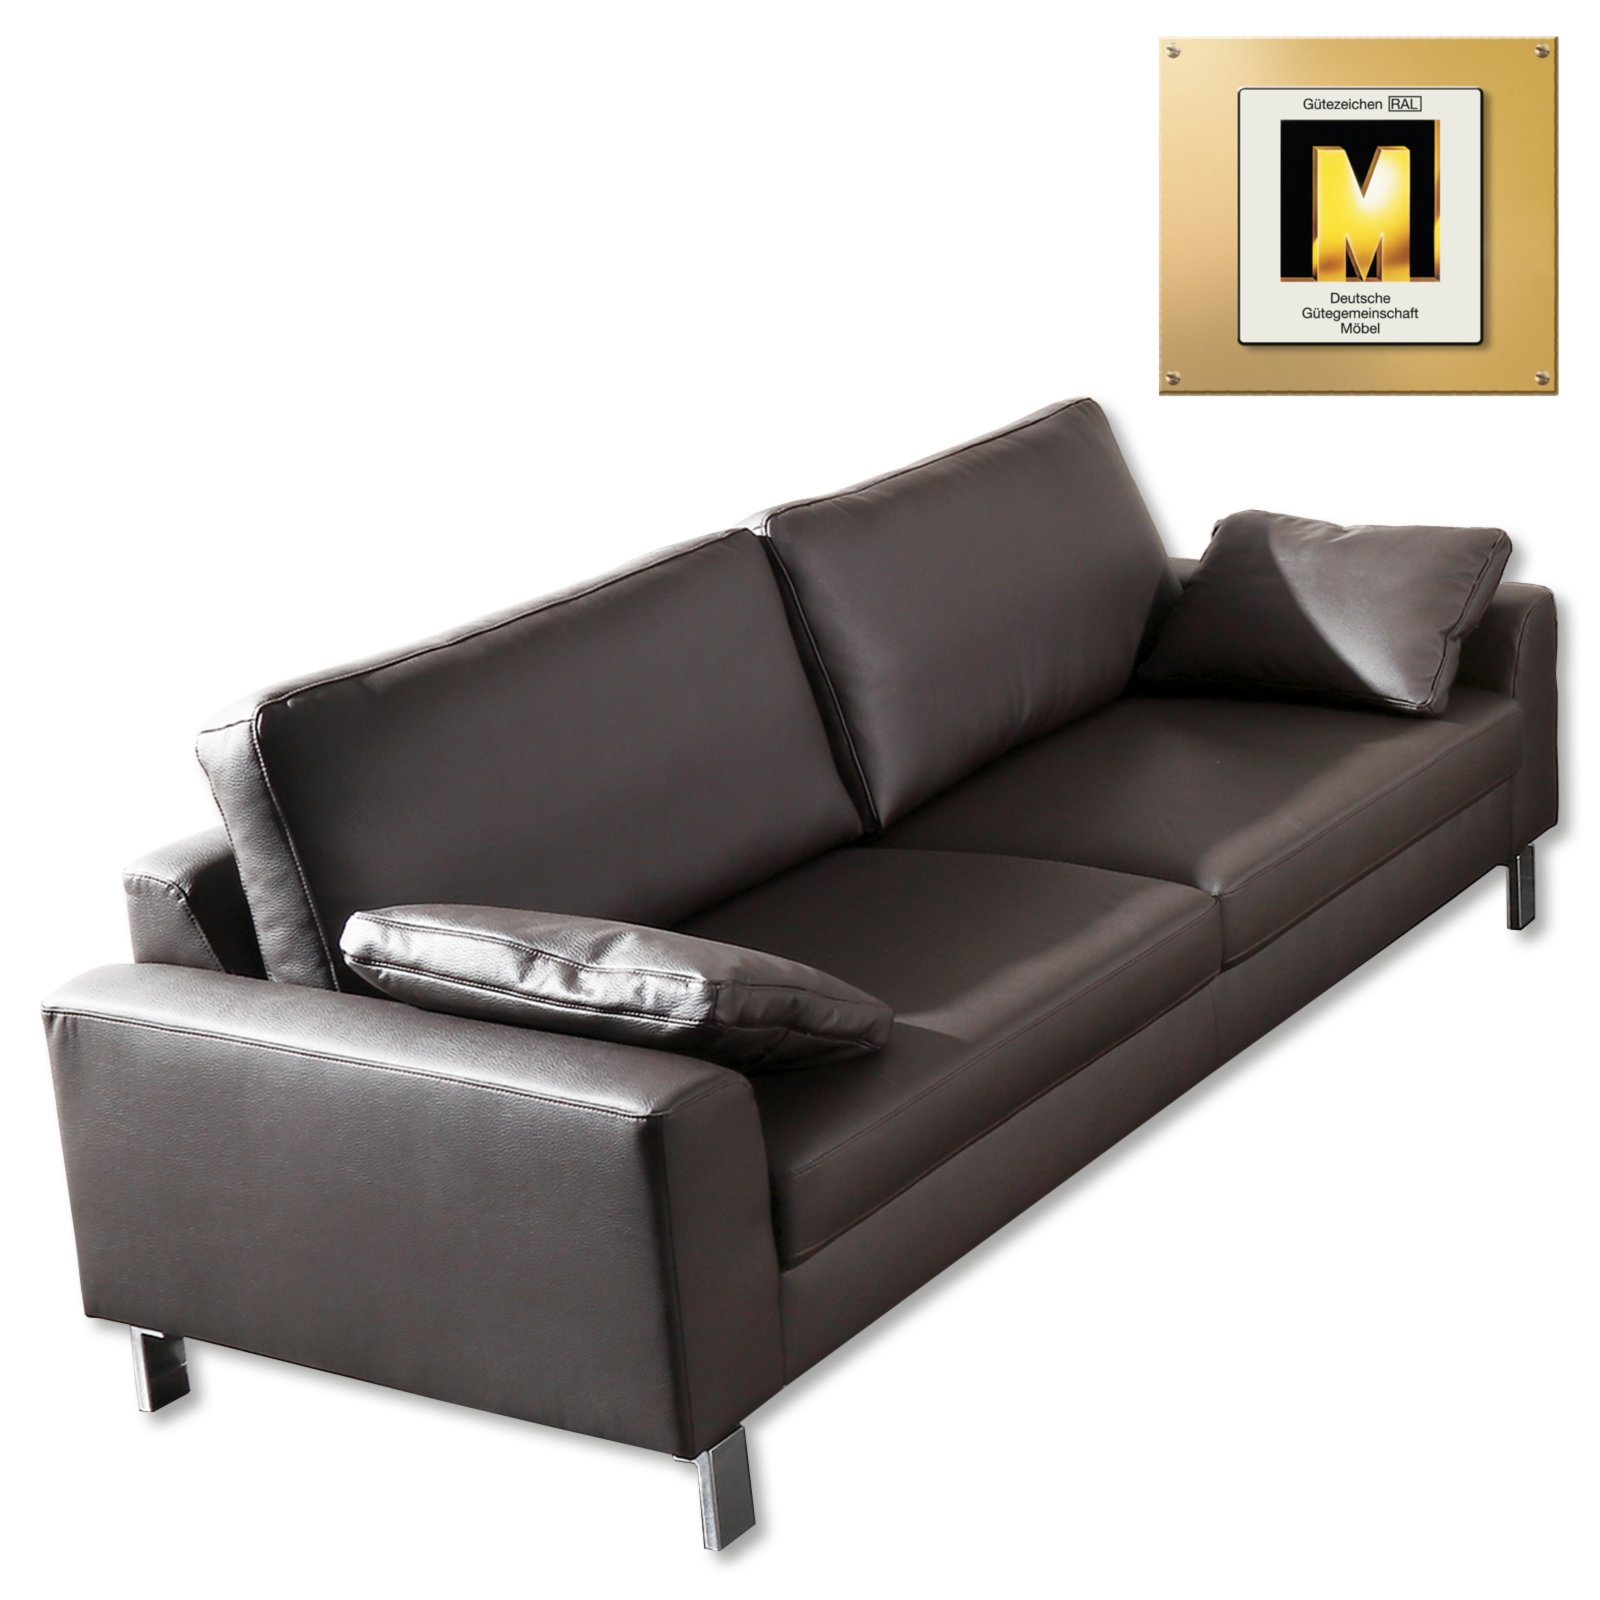 3 sitzer sofa braun inklusive r ckenkissen einzelsofas 2er 3er 4er sofas couches. Black Bedroom Furniture Sets. Home Design Ideas